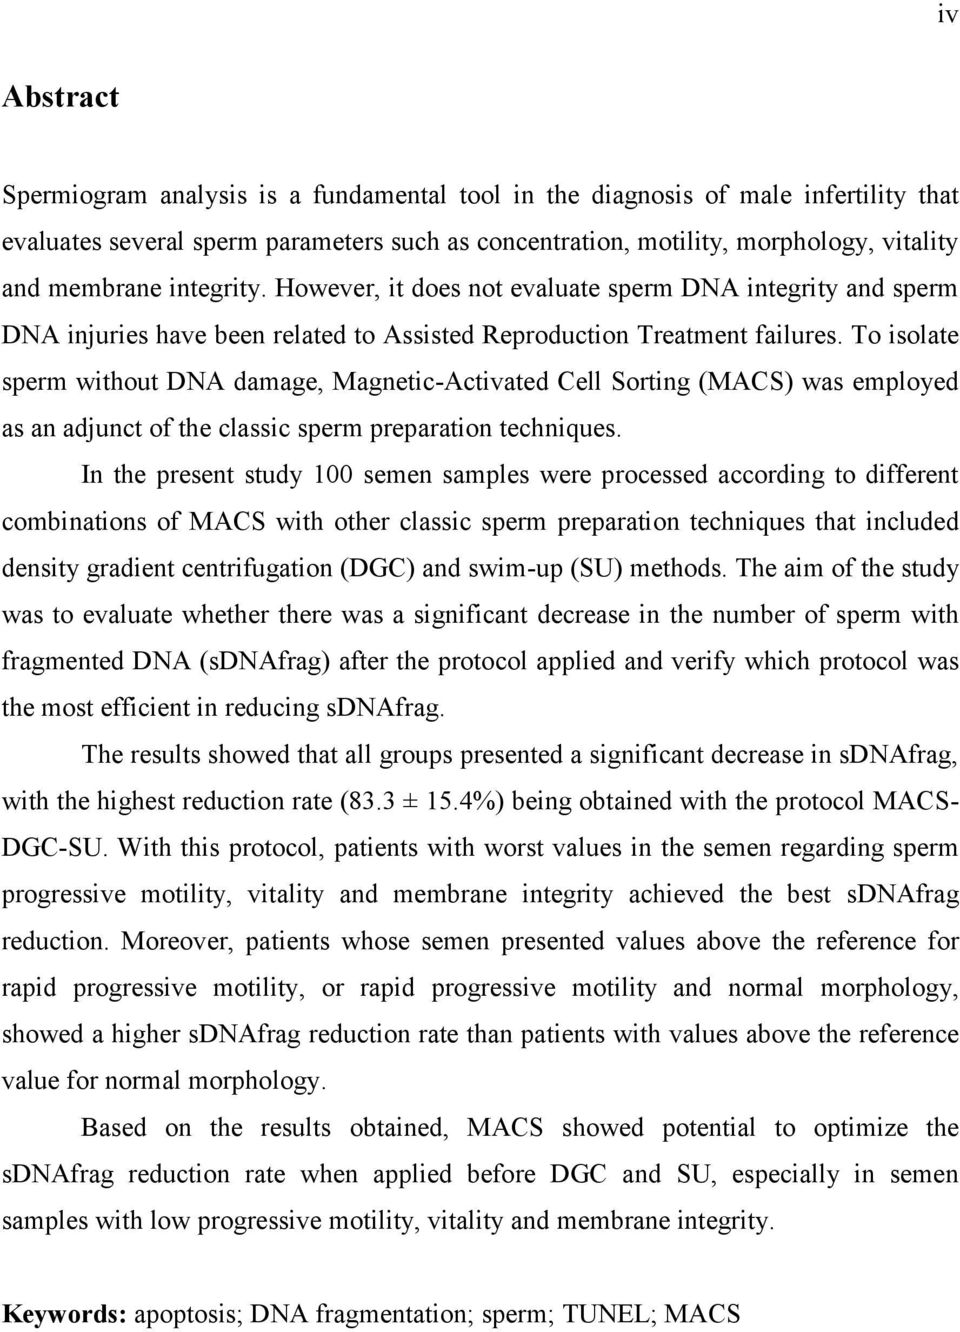 To isolate sperm without DNA damage, Magnetic-Activated Cell Sorting (MACS) was employed as an adjunct of the classic sperm preparation techniques.